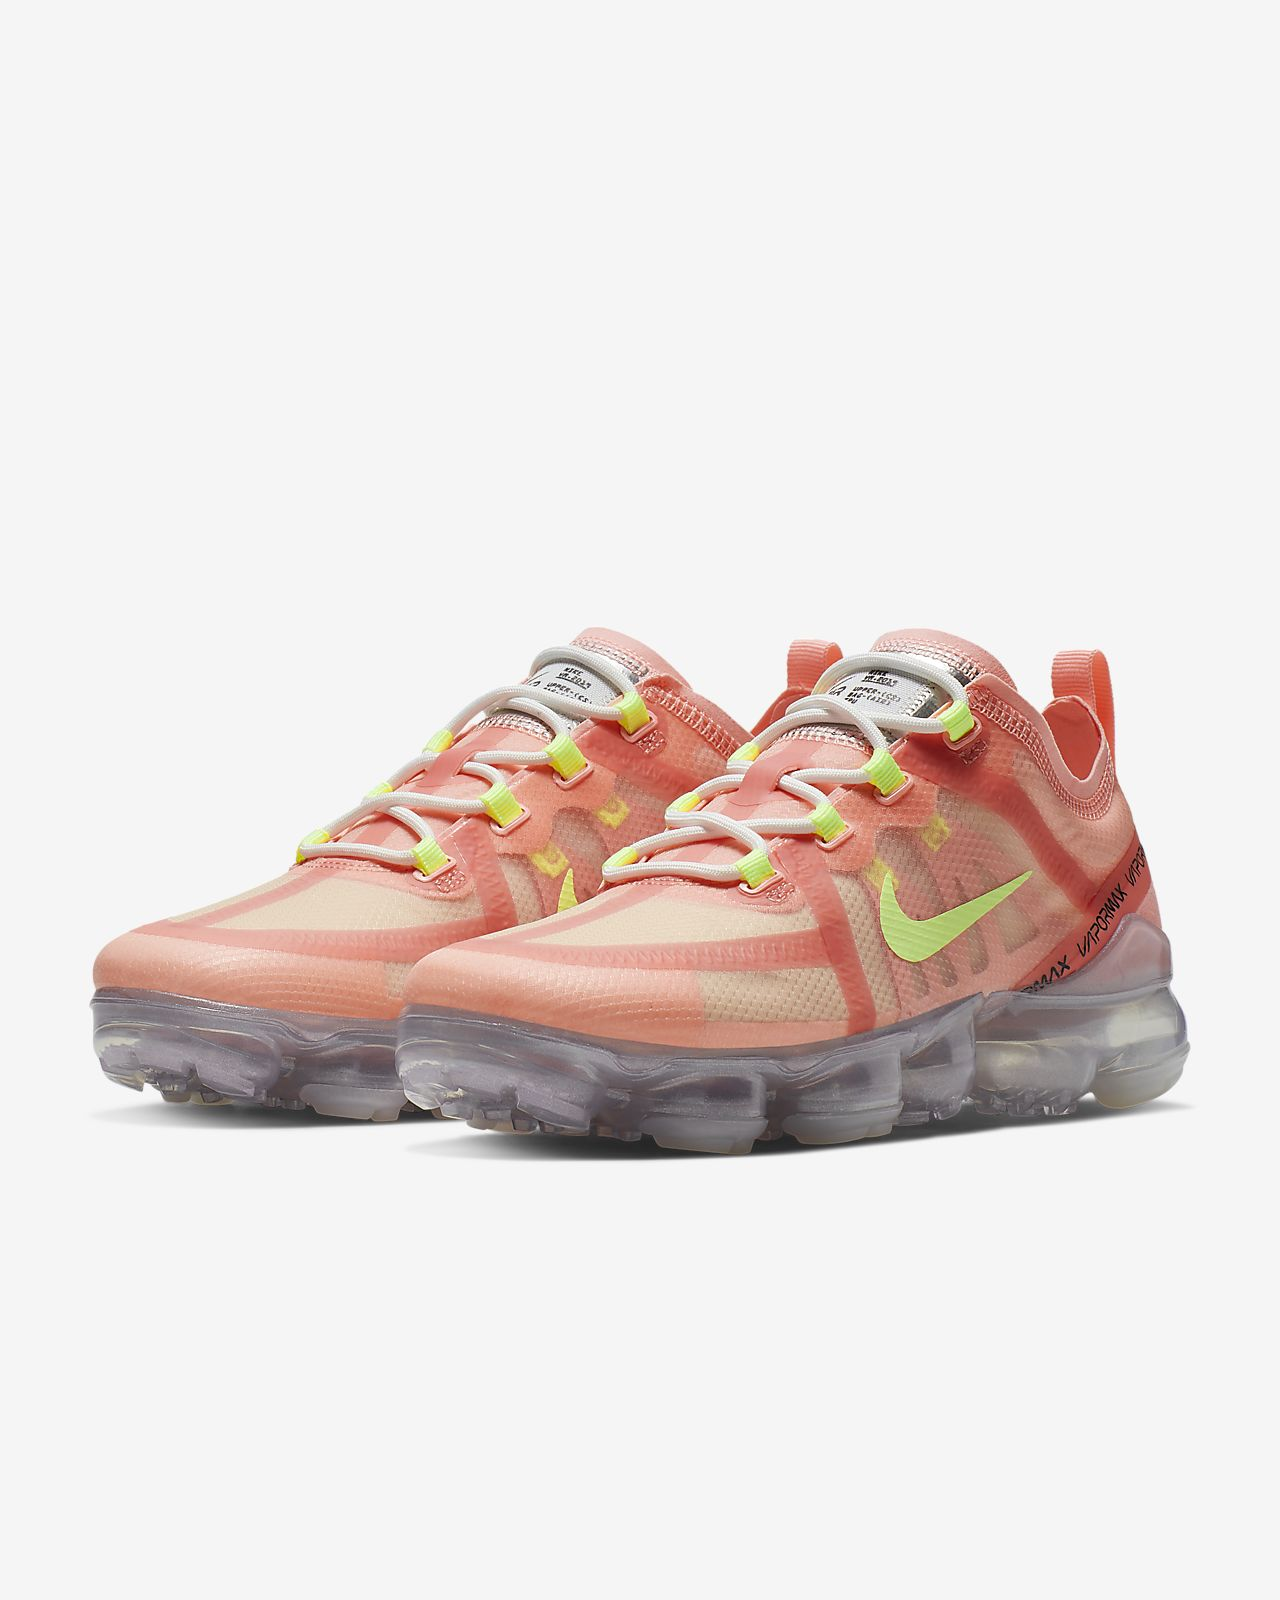 lowest price 11495 1b17a ... Chaussure Nike Air VaporMax 2019 pour Femme